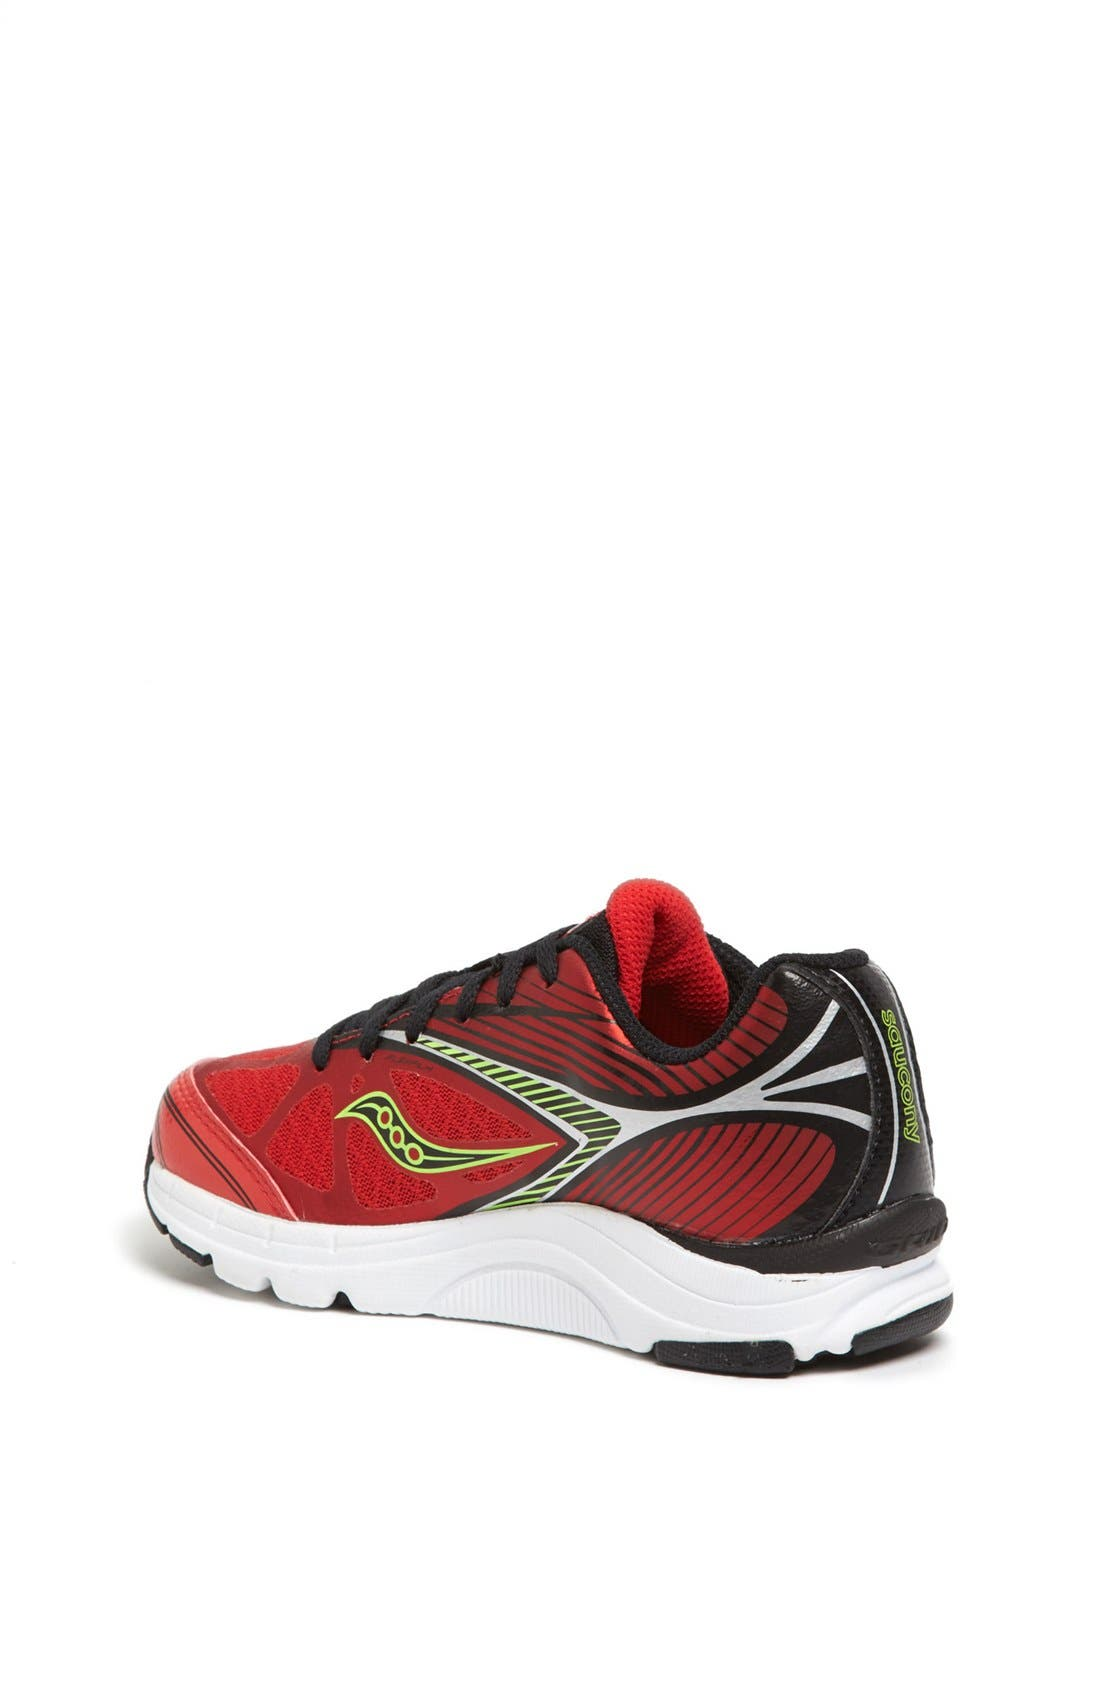 Alternate Image 2  - Saucony 'Kinvara' Athletic Shoe (Toddler, Little Kid & Big Kid) (Online Only)